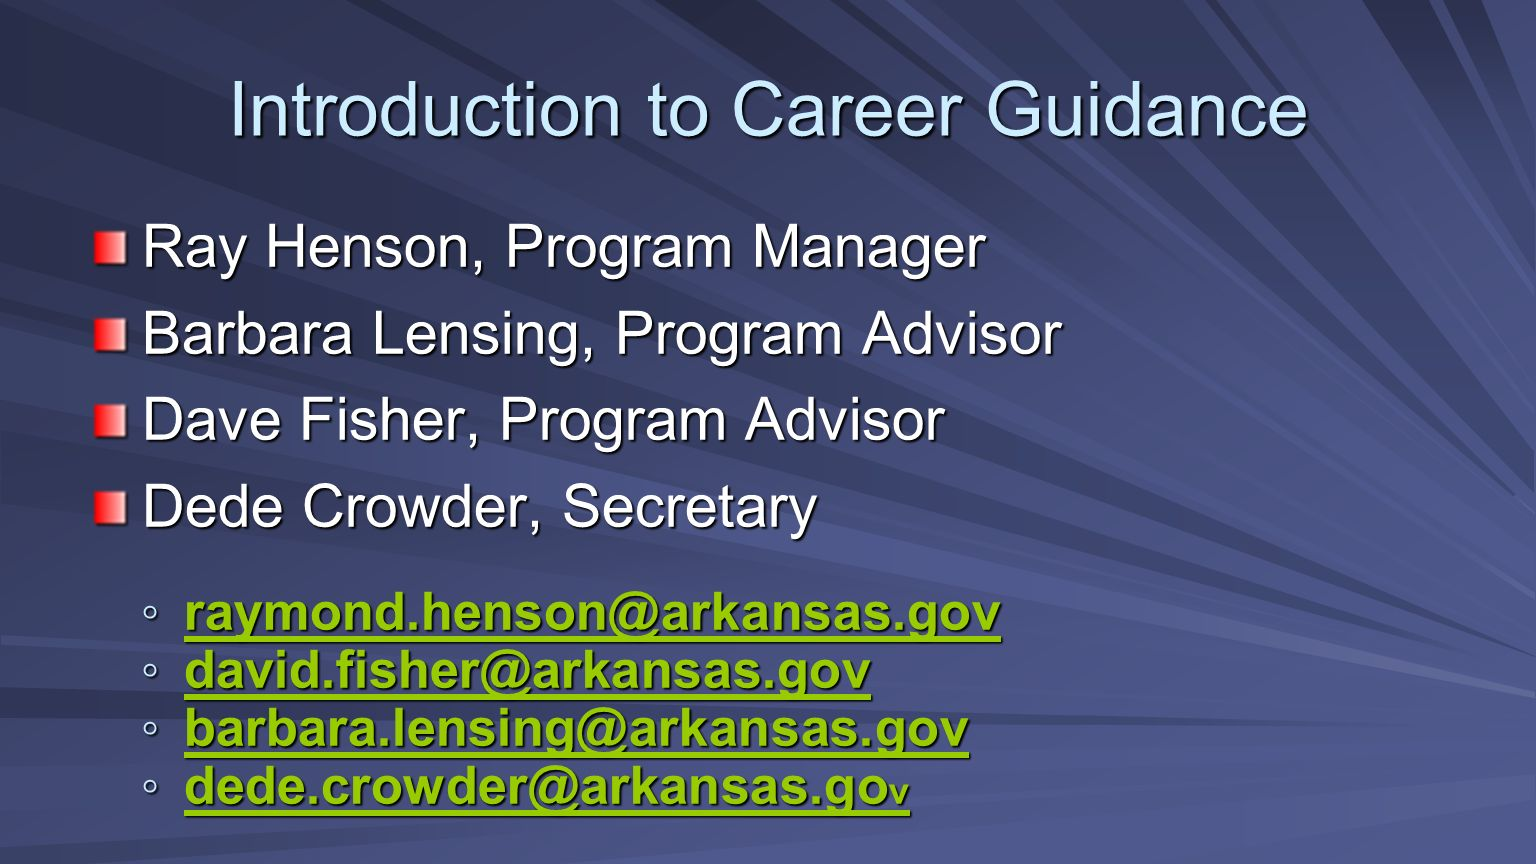 Introduction to Career Guidance Ray Henson, Program Manager Barbara Lensing, Program Advisor Dave Fisher, Program Advisor Dede Crowder, Secretary raymond.henson@arkansas.gov raymond.henson@arkansas.gov raymond.henson@arkansas.gov david.fisher@arkansas.gov david.fisher@arkansas.gov david.fisher@arkansas.gov barbara.lensing@arkansas.gov barbara.lensing@arkansas.gov barbara.lensing@arkansas.gov dede.crowder@arkansas.go v dede.crowder@arkansas.go v dede.crowder@arkansas.go v dede.crowder@arkansas.go v